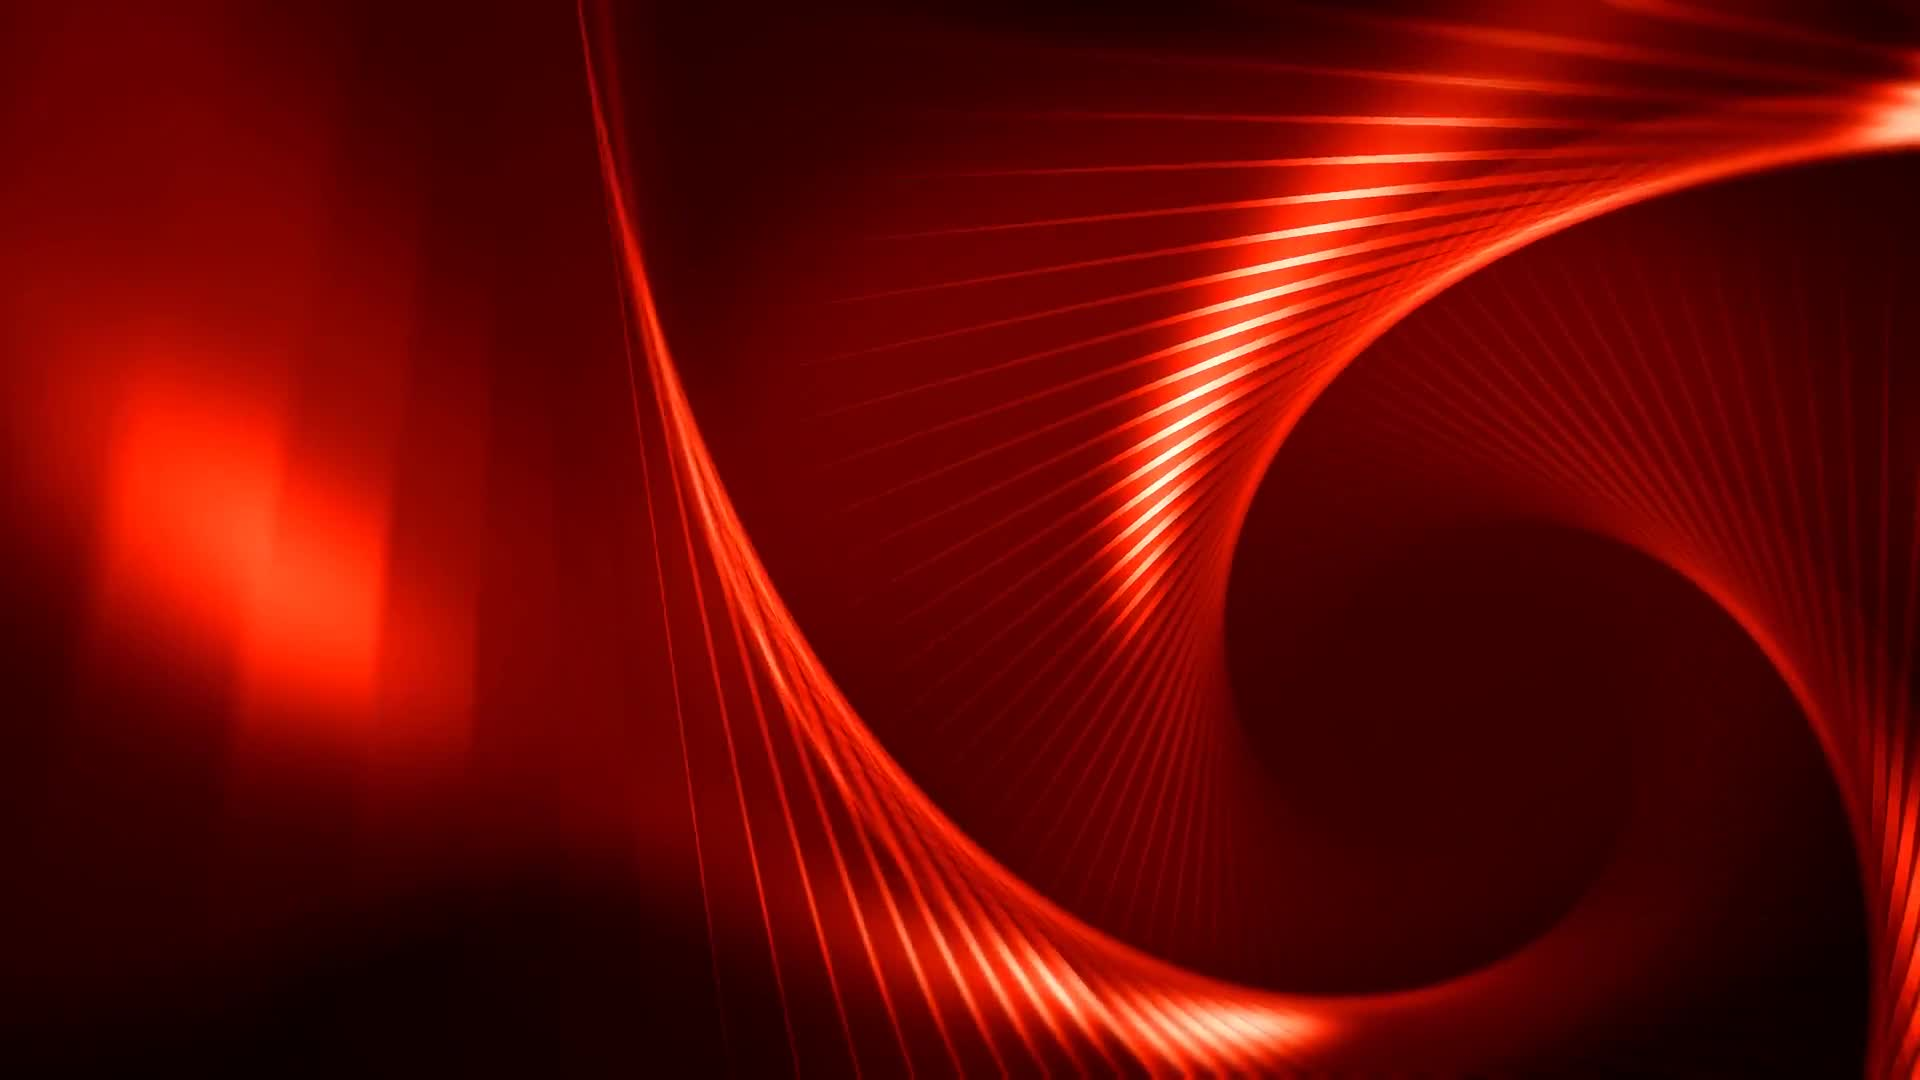 Rotating spinning abstract background loop